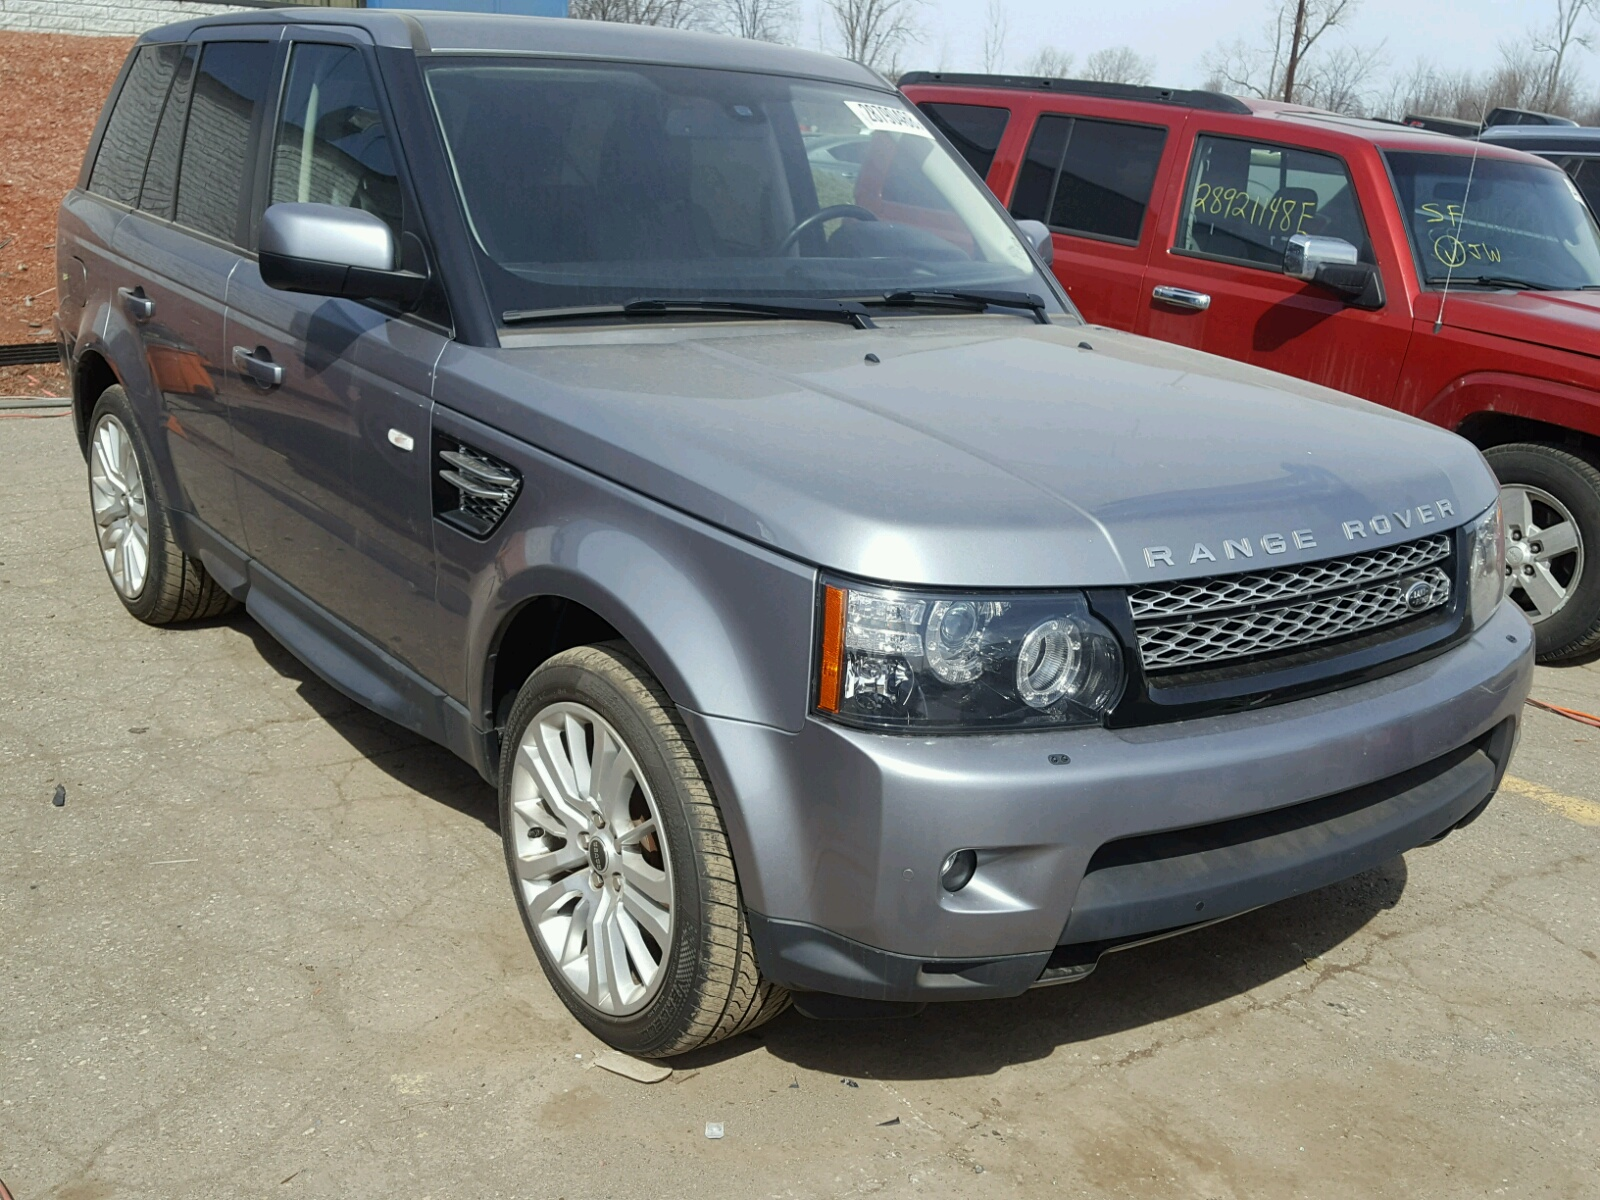 copart ia landrover online salvage auto of auctions des in black left land moines rover for cert on en sale lot view carfinder hse title